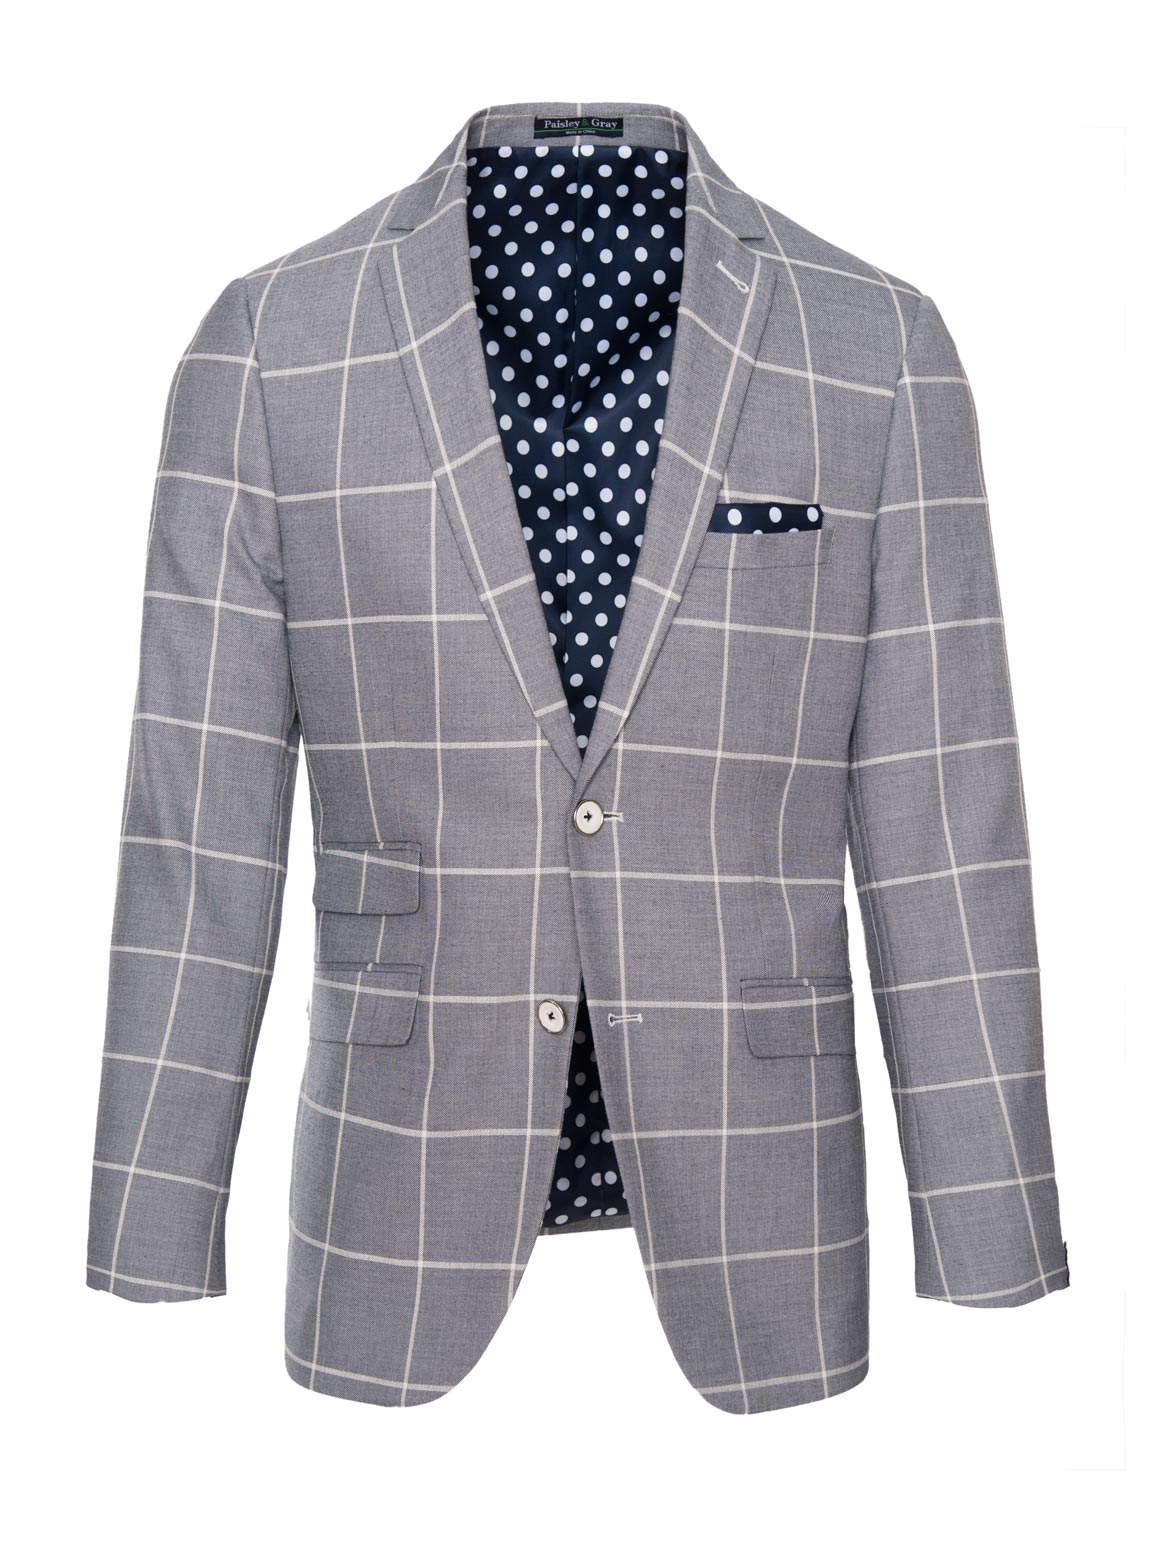 paisley & gray denim & white windowpane skinny fit notch lapel suit jacket 2148J eccentric navy & white polkadot lining and pocket square white plated buttons flap pockets